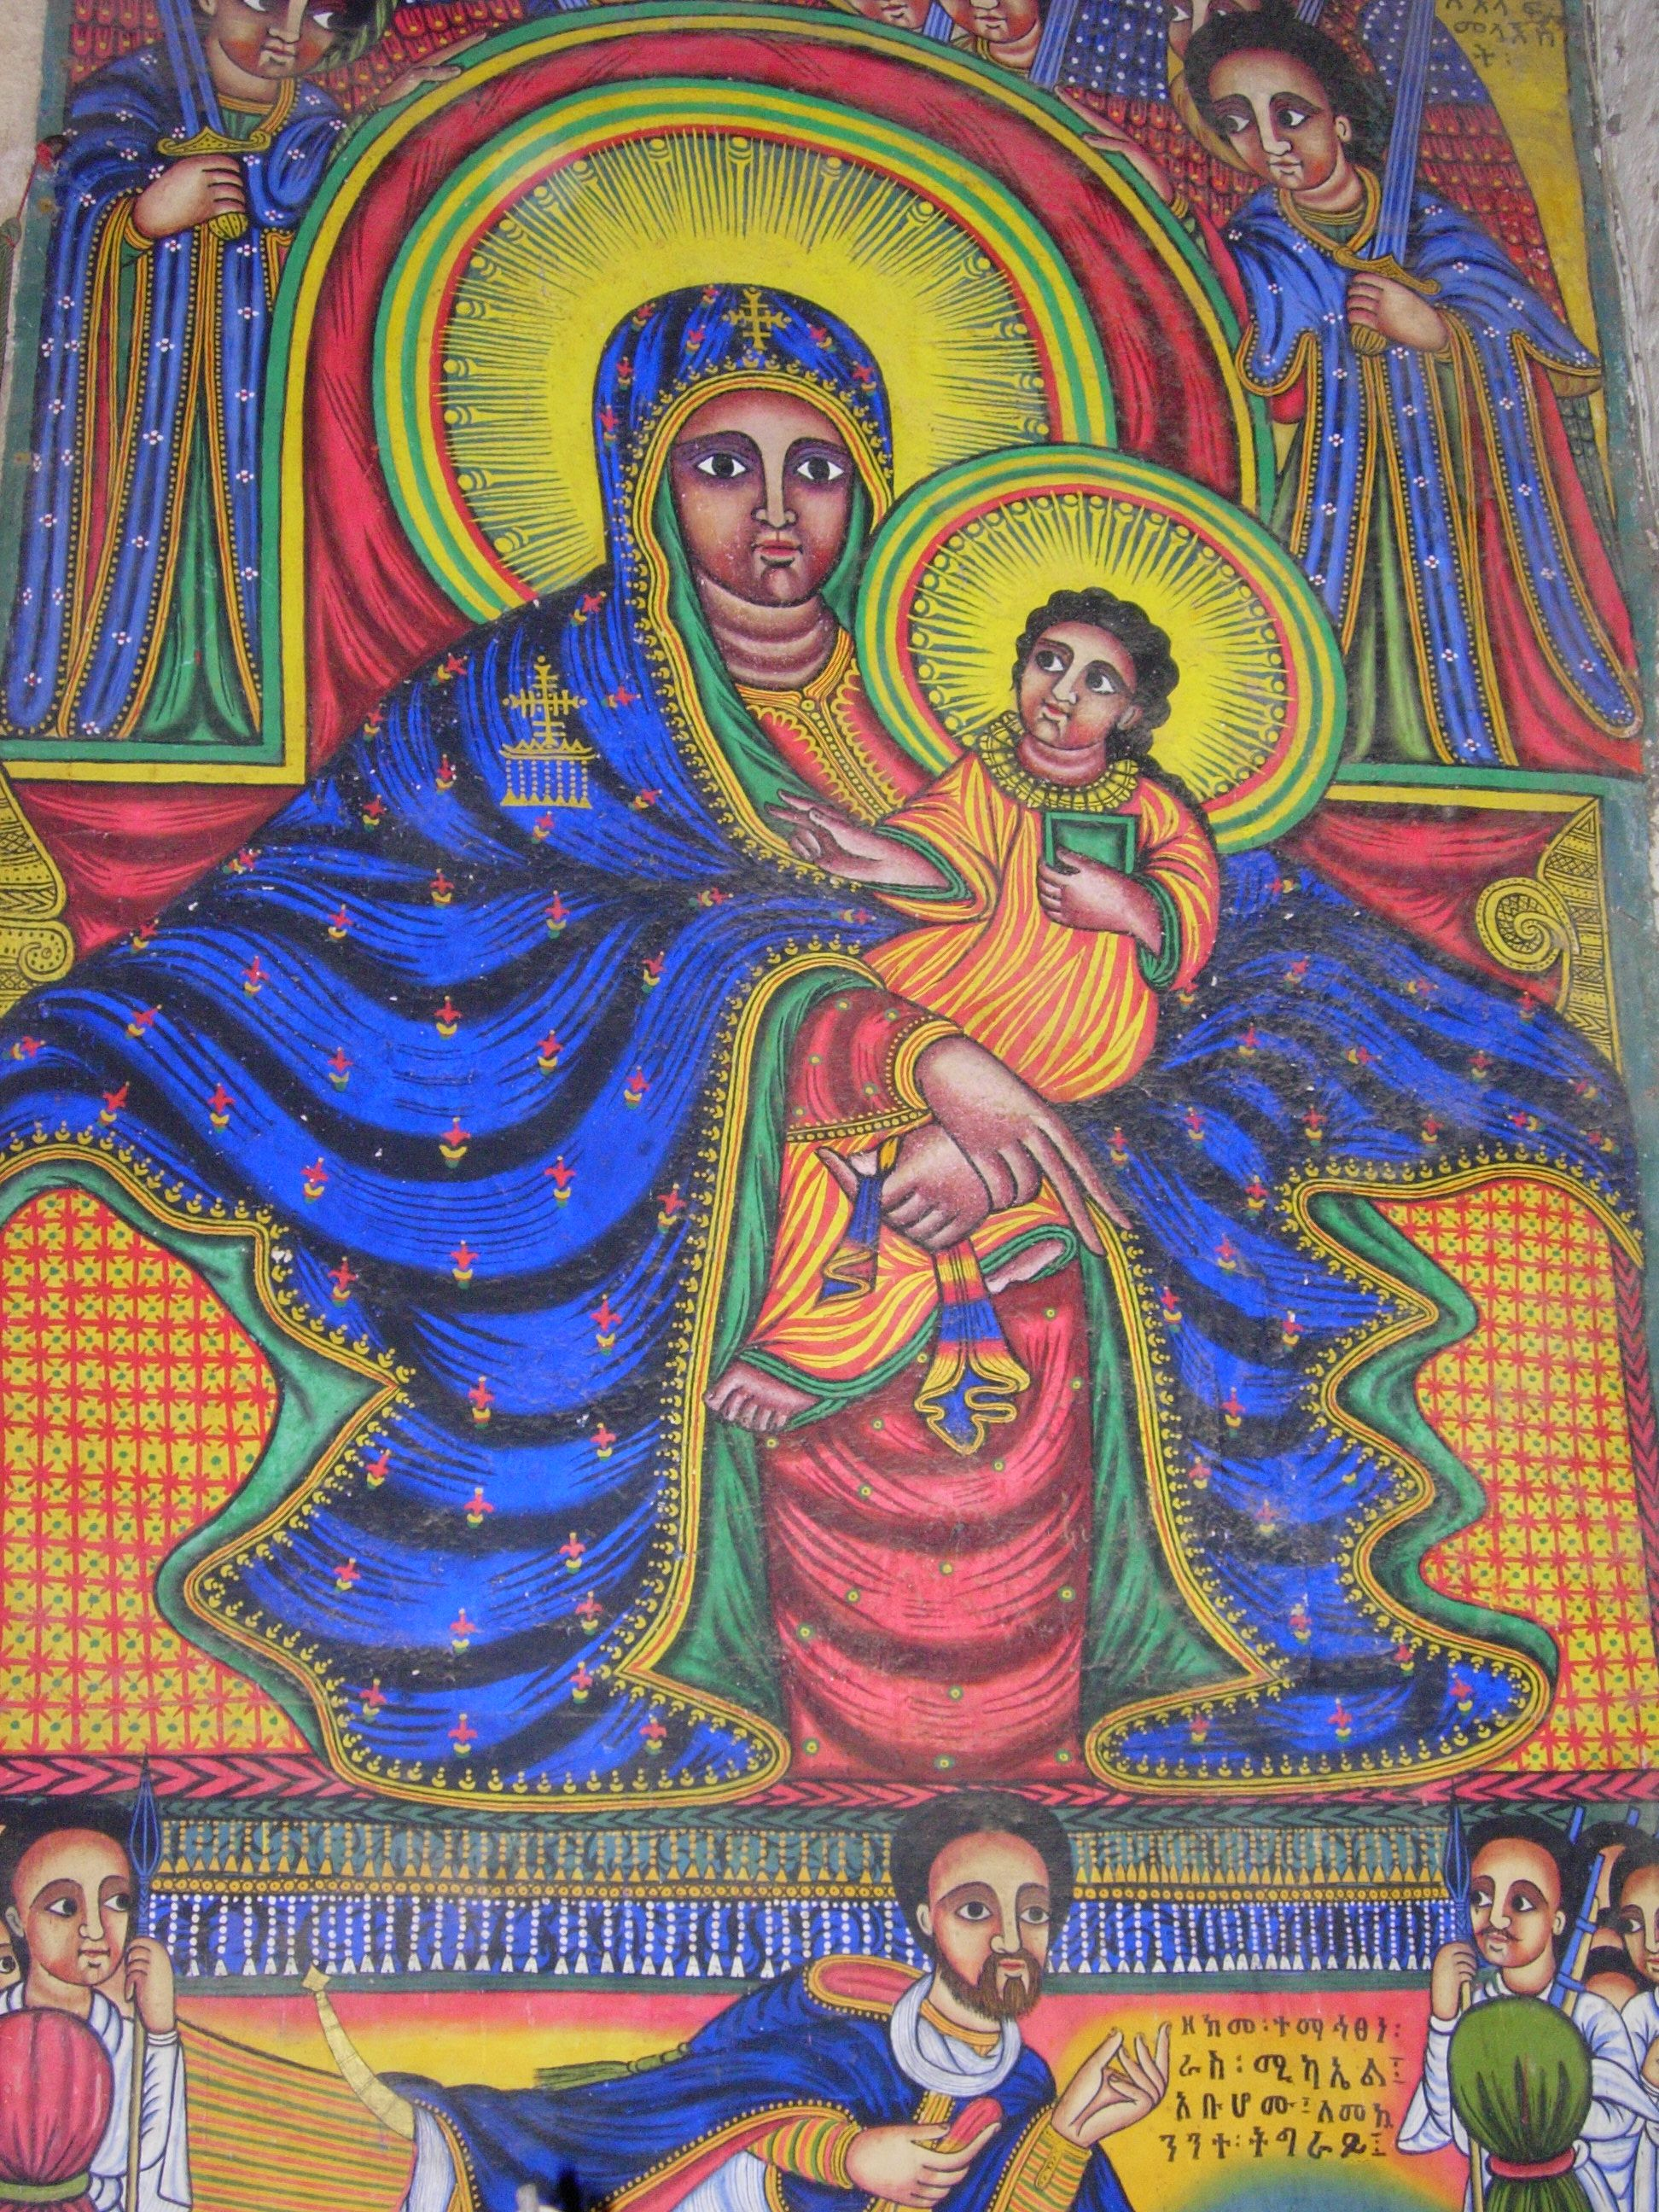 http://upload.wikimedia.org/wikipedia/commons/b/ba/Ethiopia-Axum_Cathedral-fresco-Black_Madonna.JPG